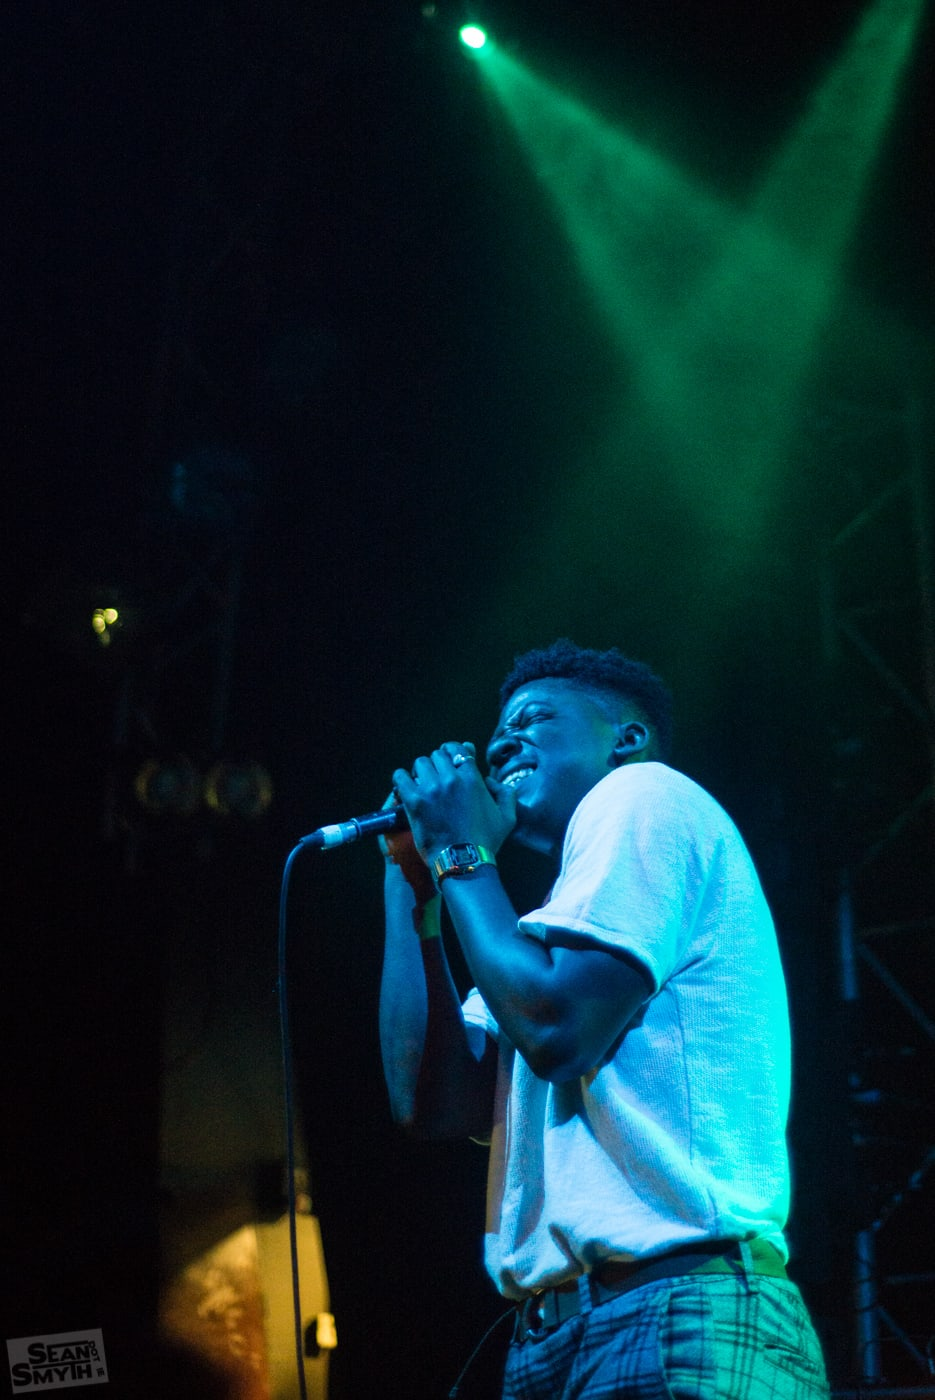 jafaris-at-the-button-factory-by-sean-smyth-28-9-16-5-of-8